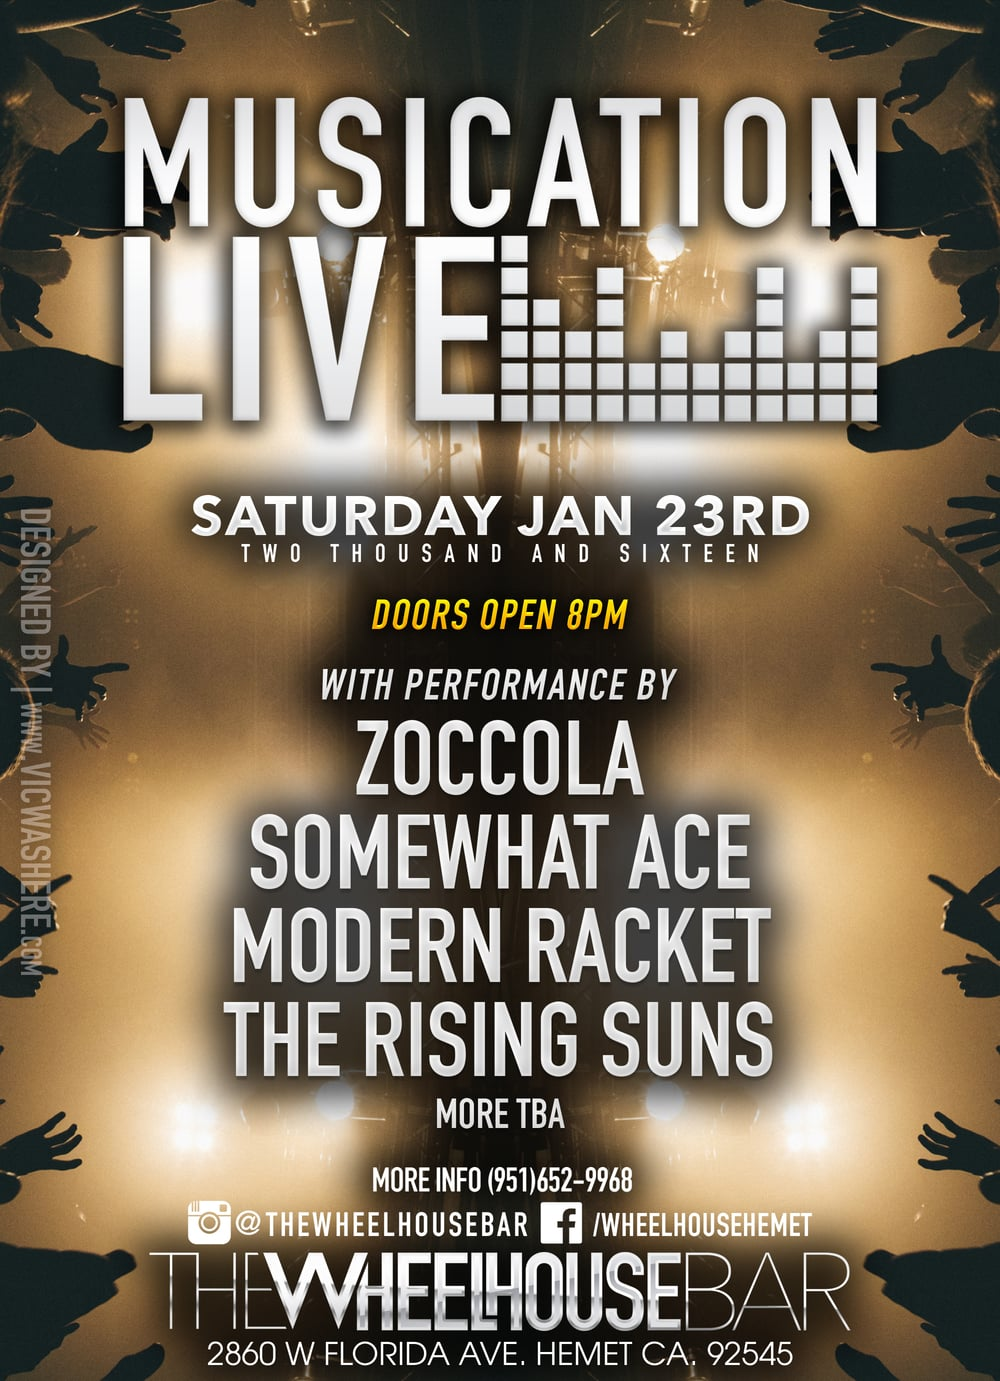 Musication Live Saturday 23rd 2016 at The Wheelhouse Bar Live Bands/Band